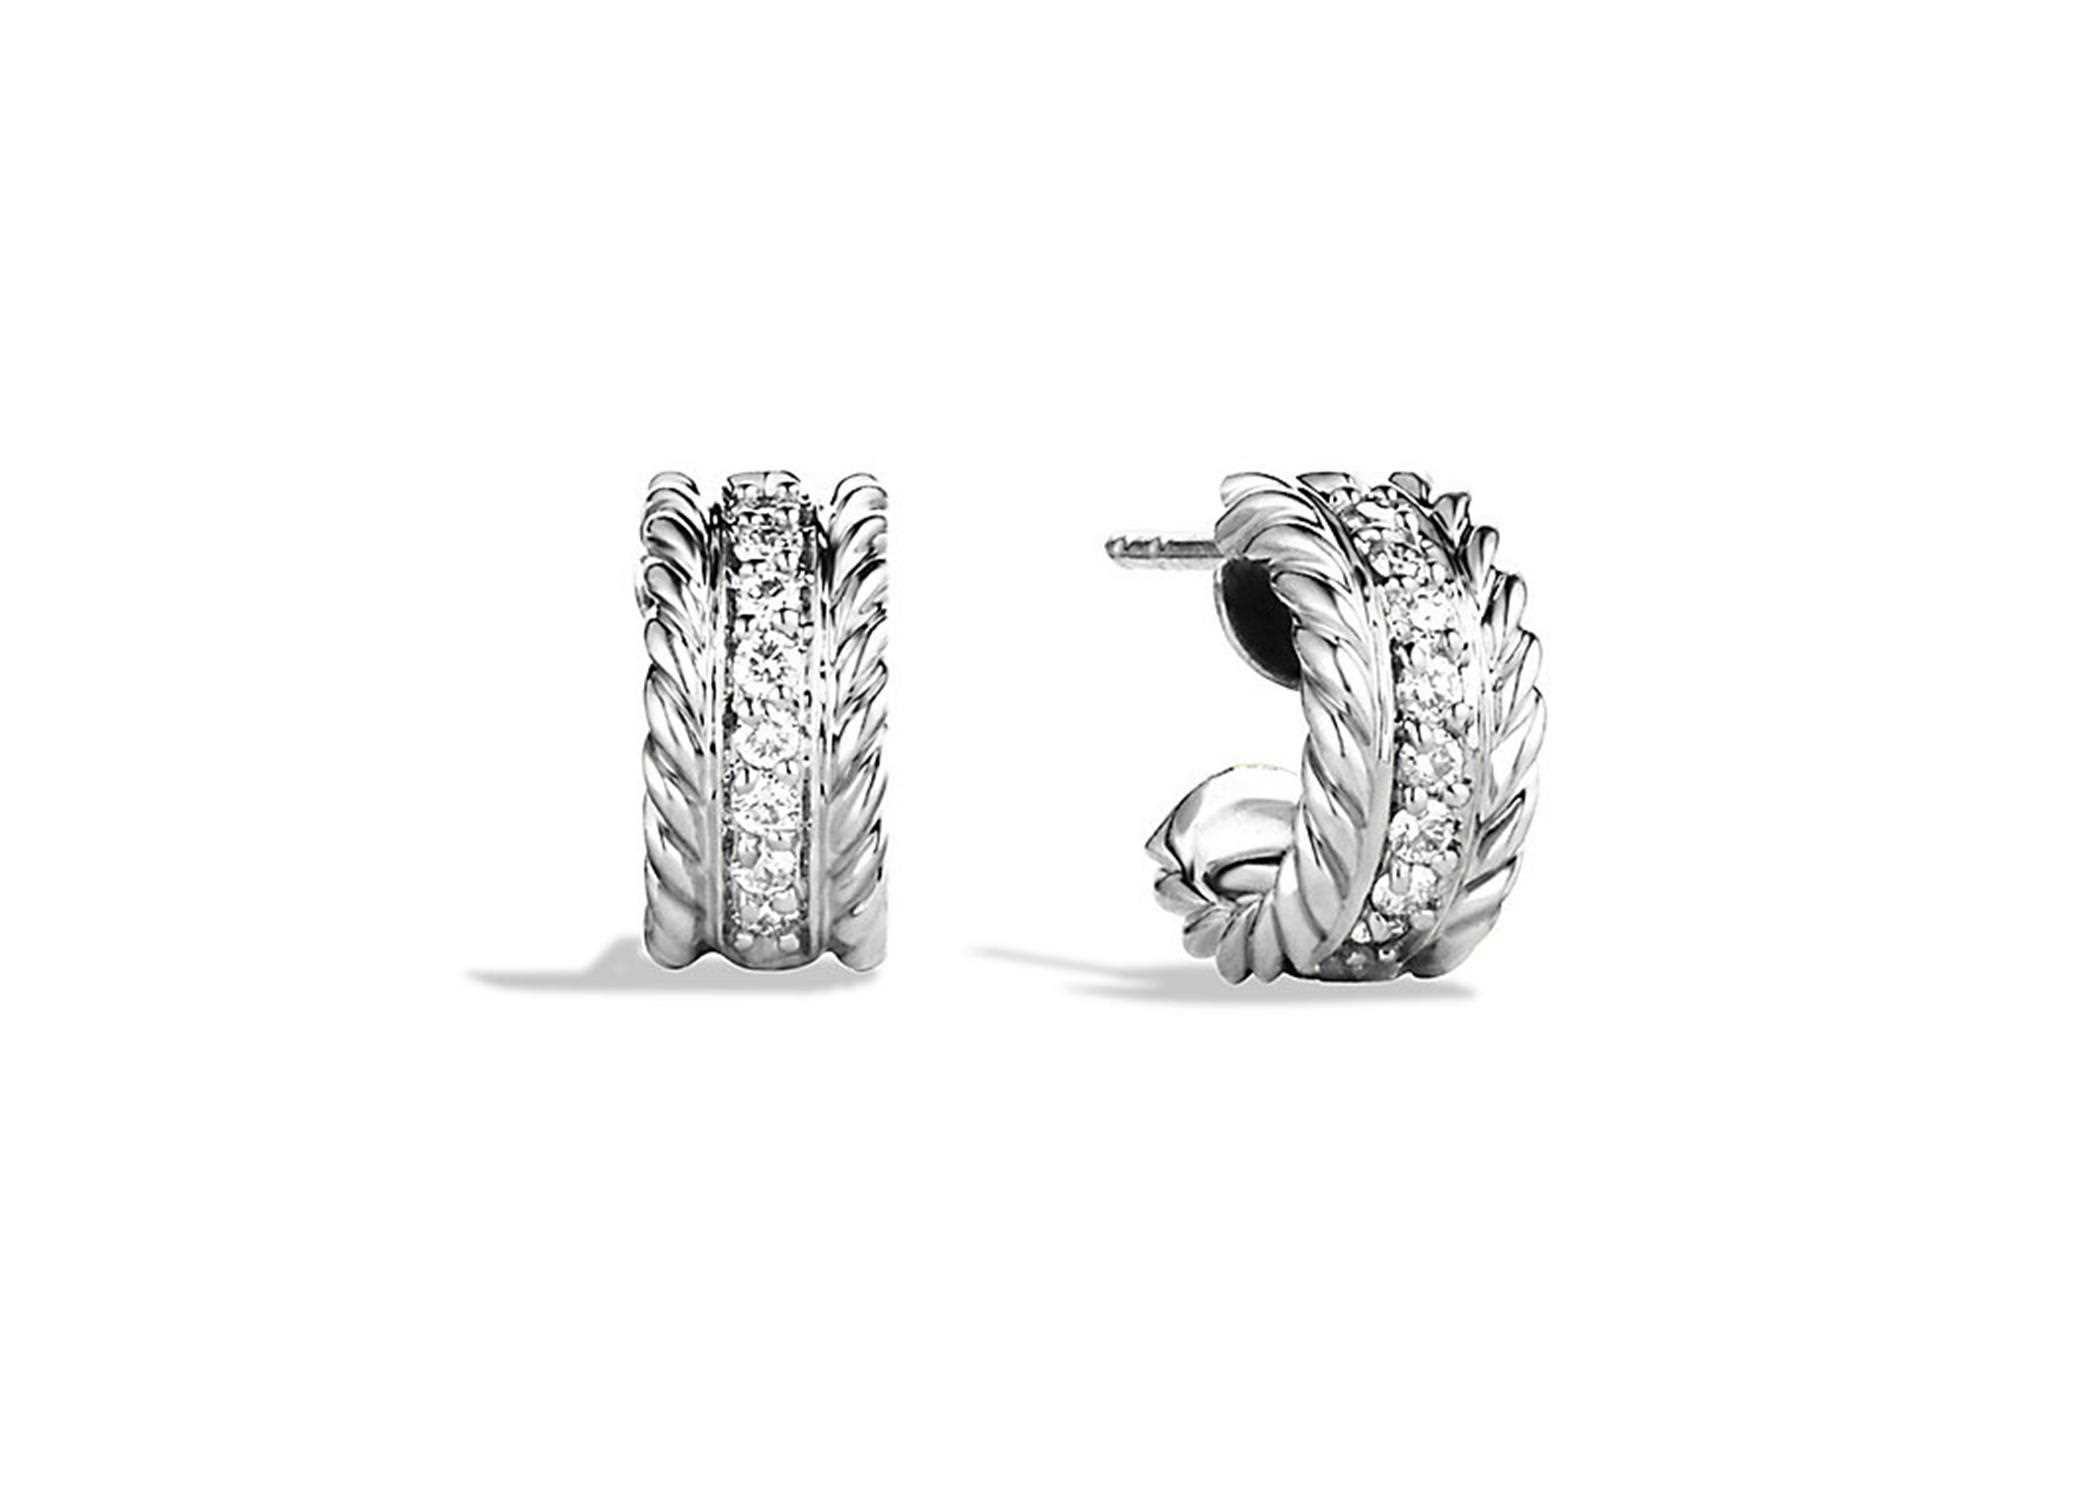 Silver Plated CZ Studded Twisted Wire Stud Earring